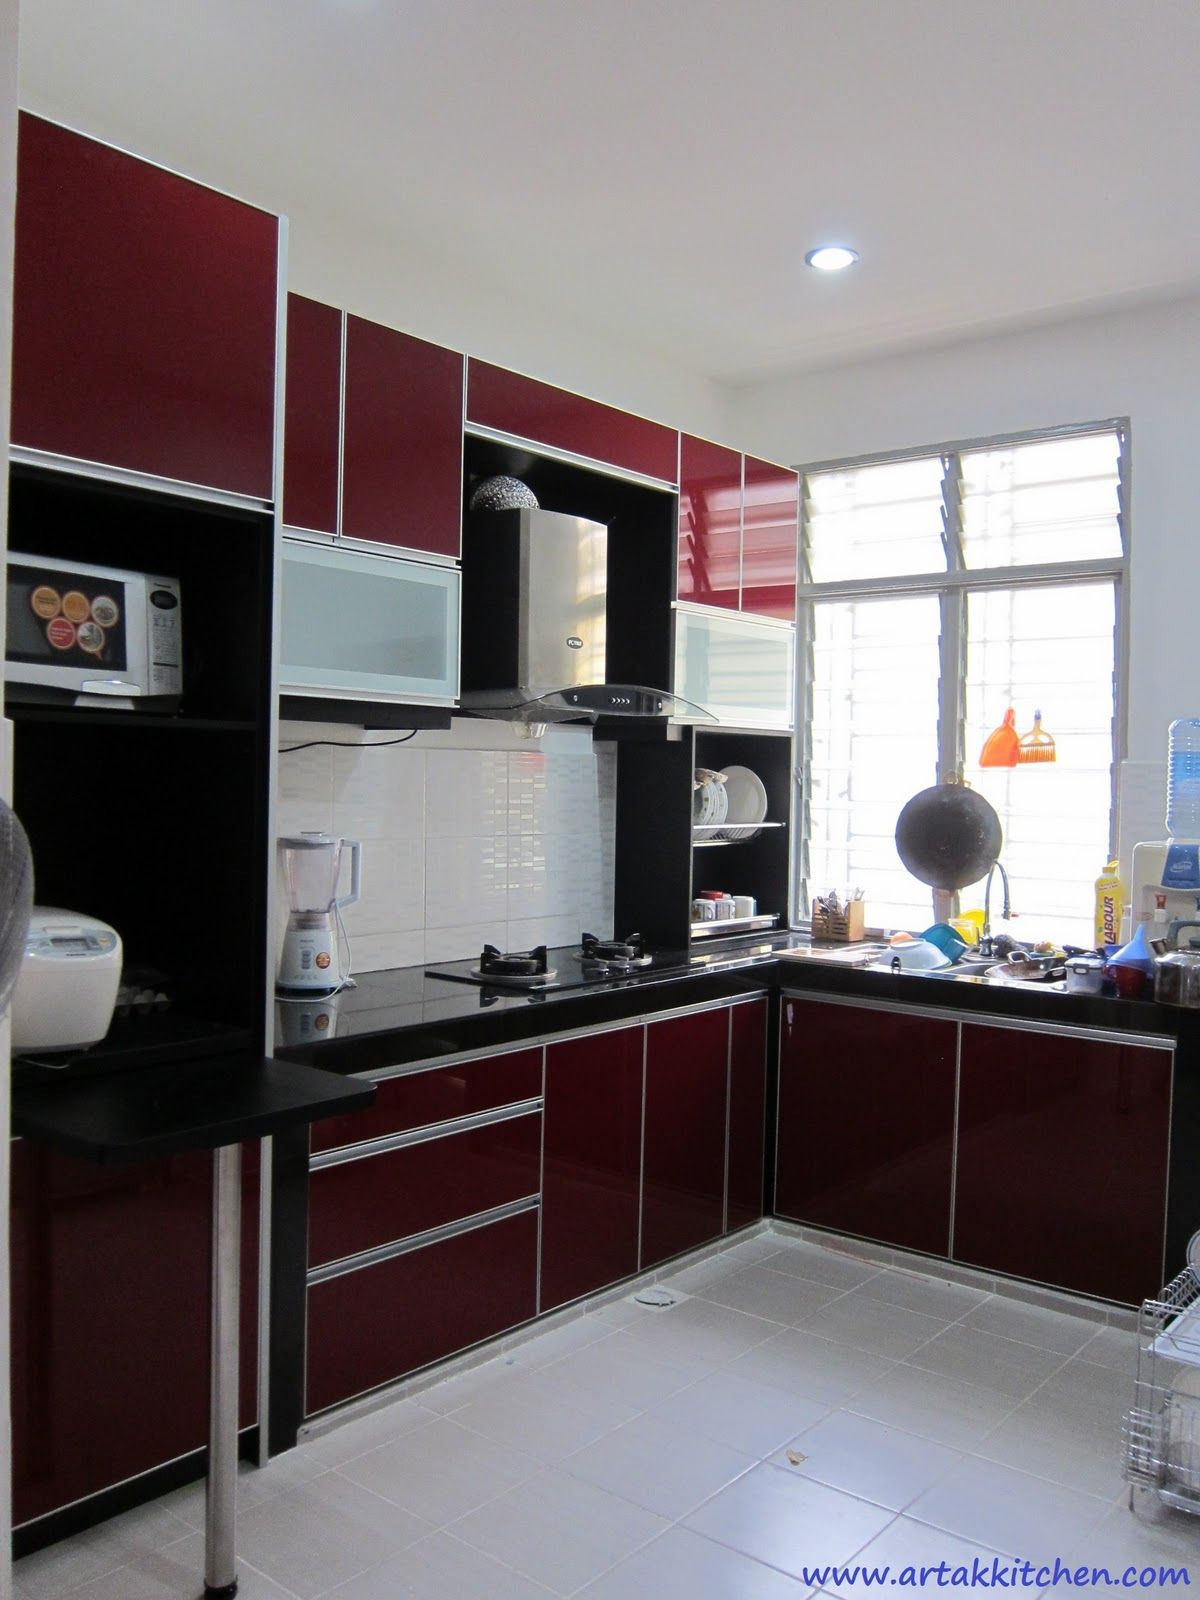 Color Kitchen Image Result For Maroon Color Kitchen Cabinets Kitchen